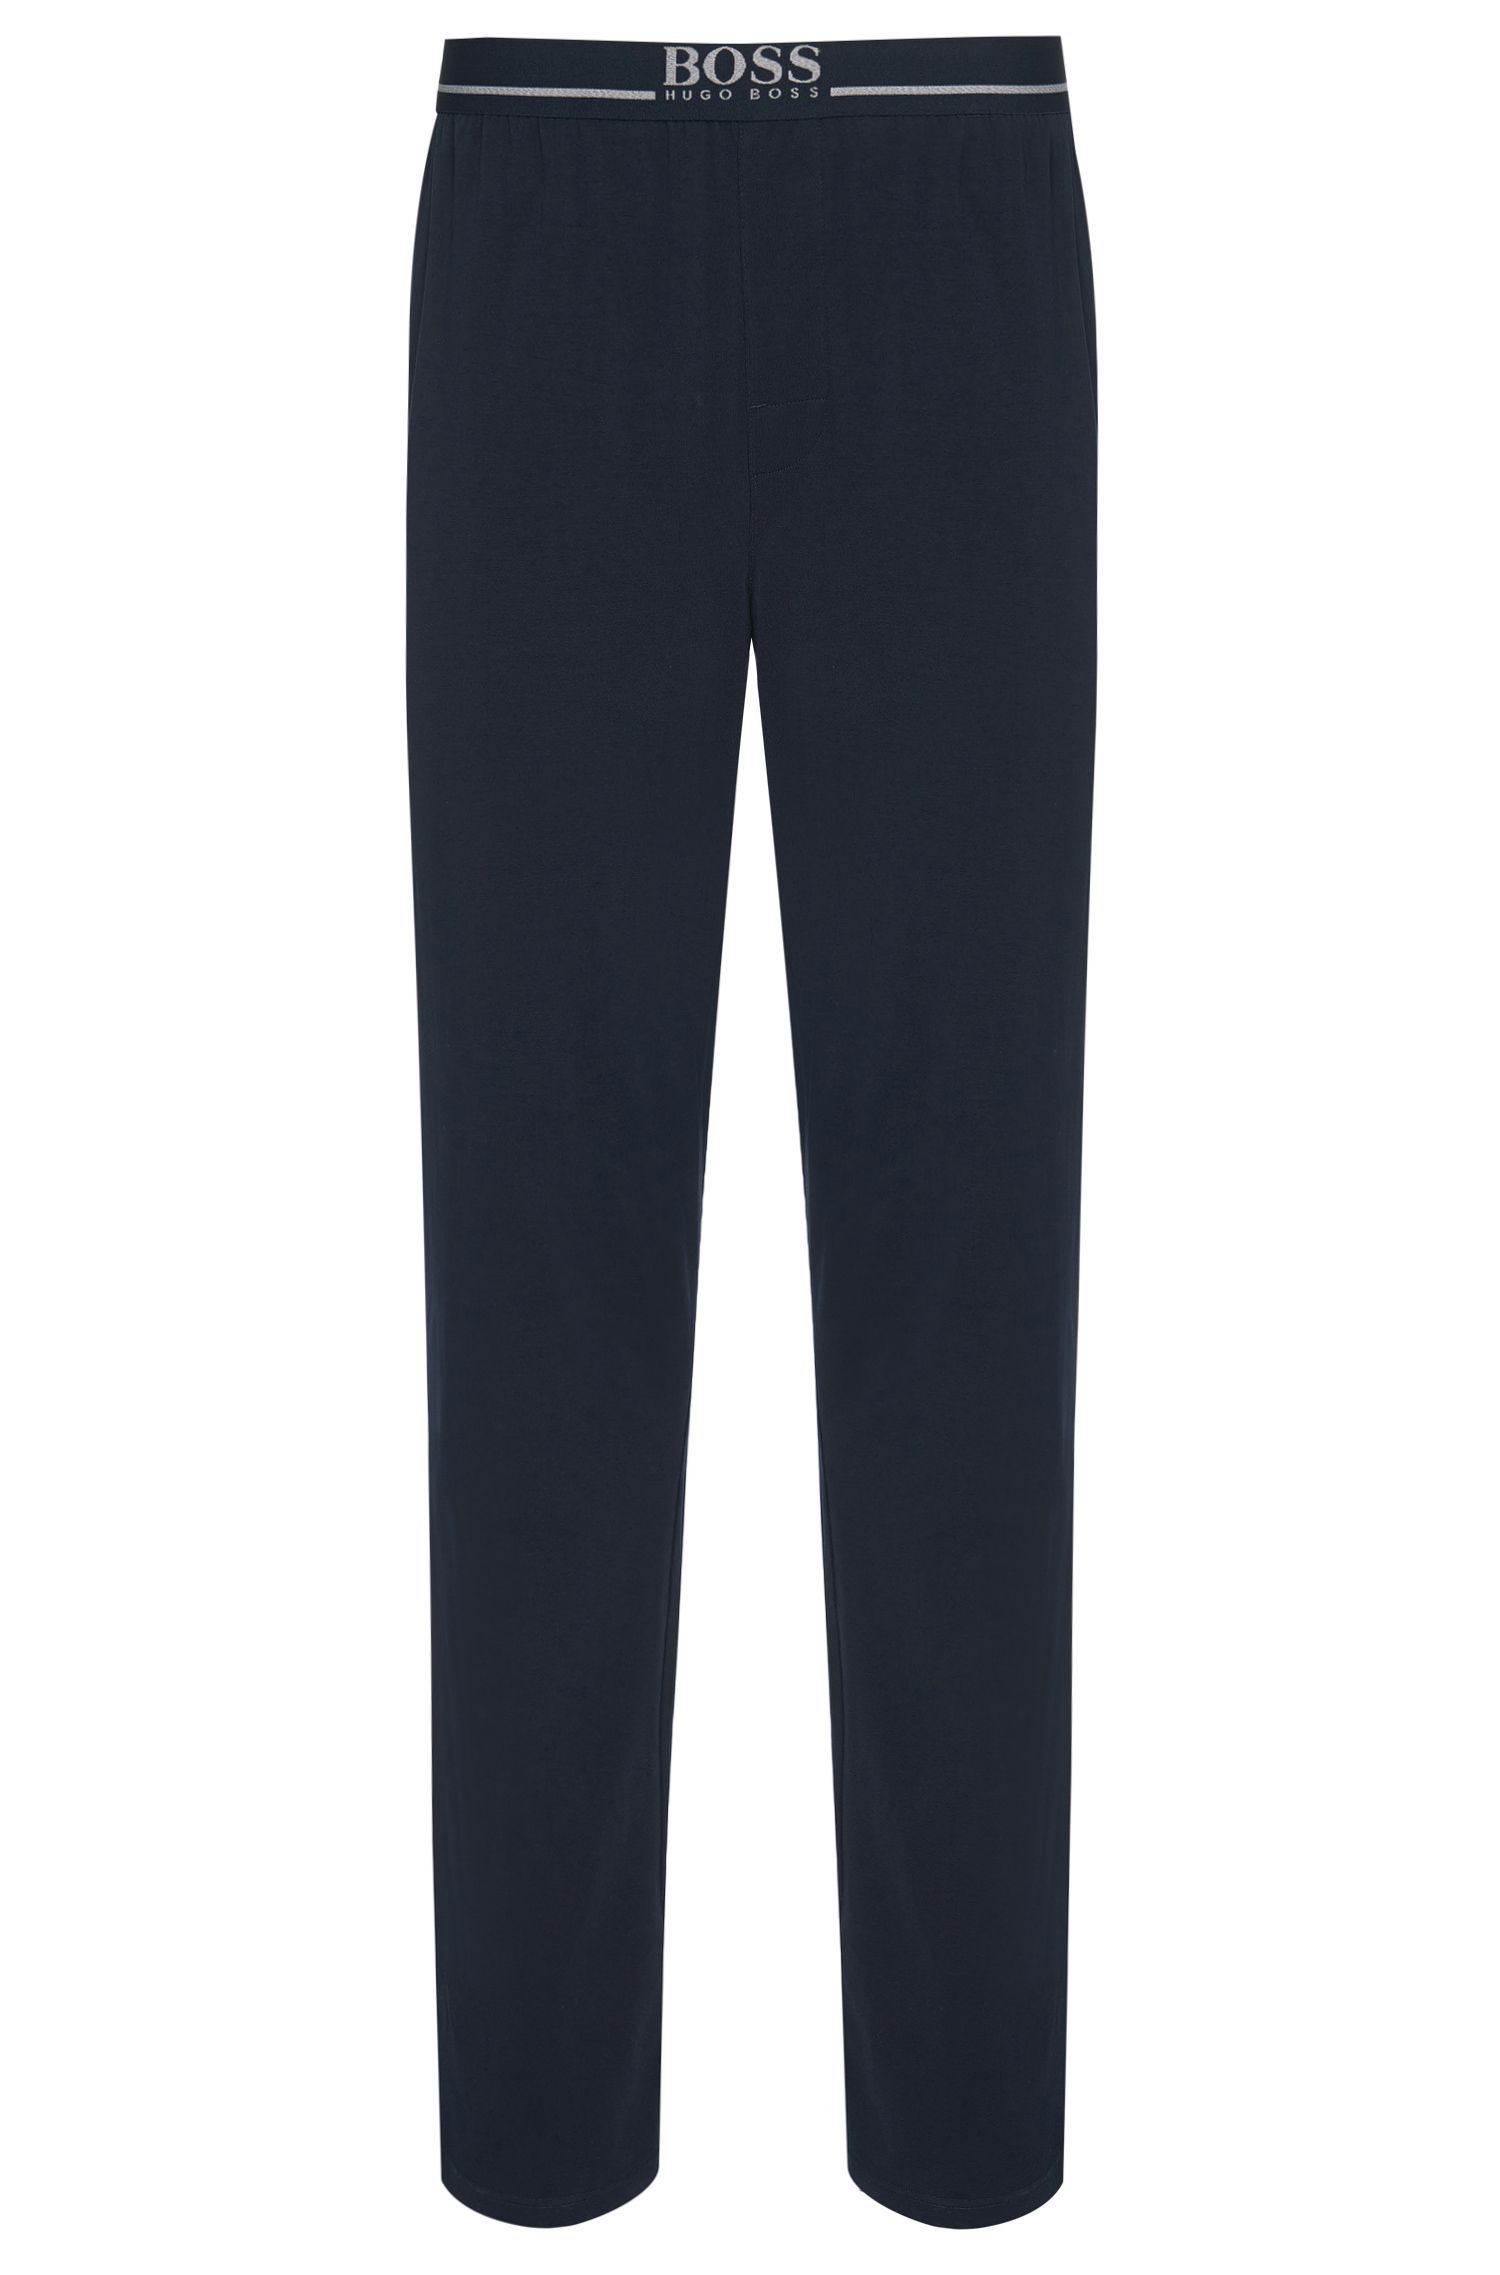 Loungewear trousers in stretch cotton jersey